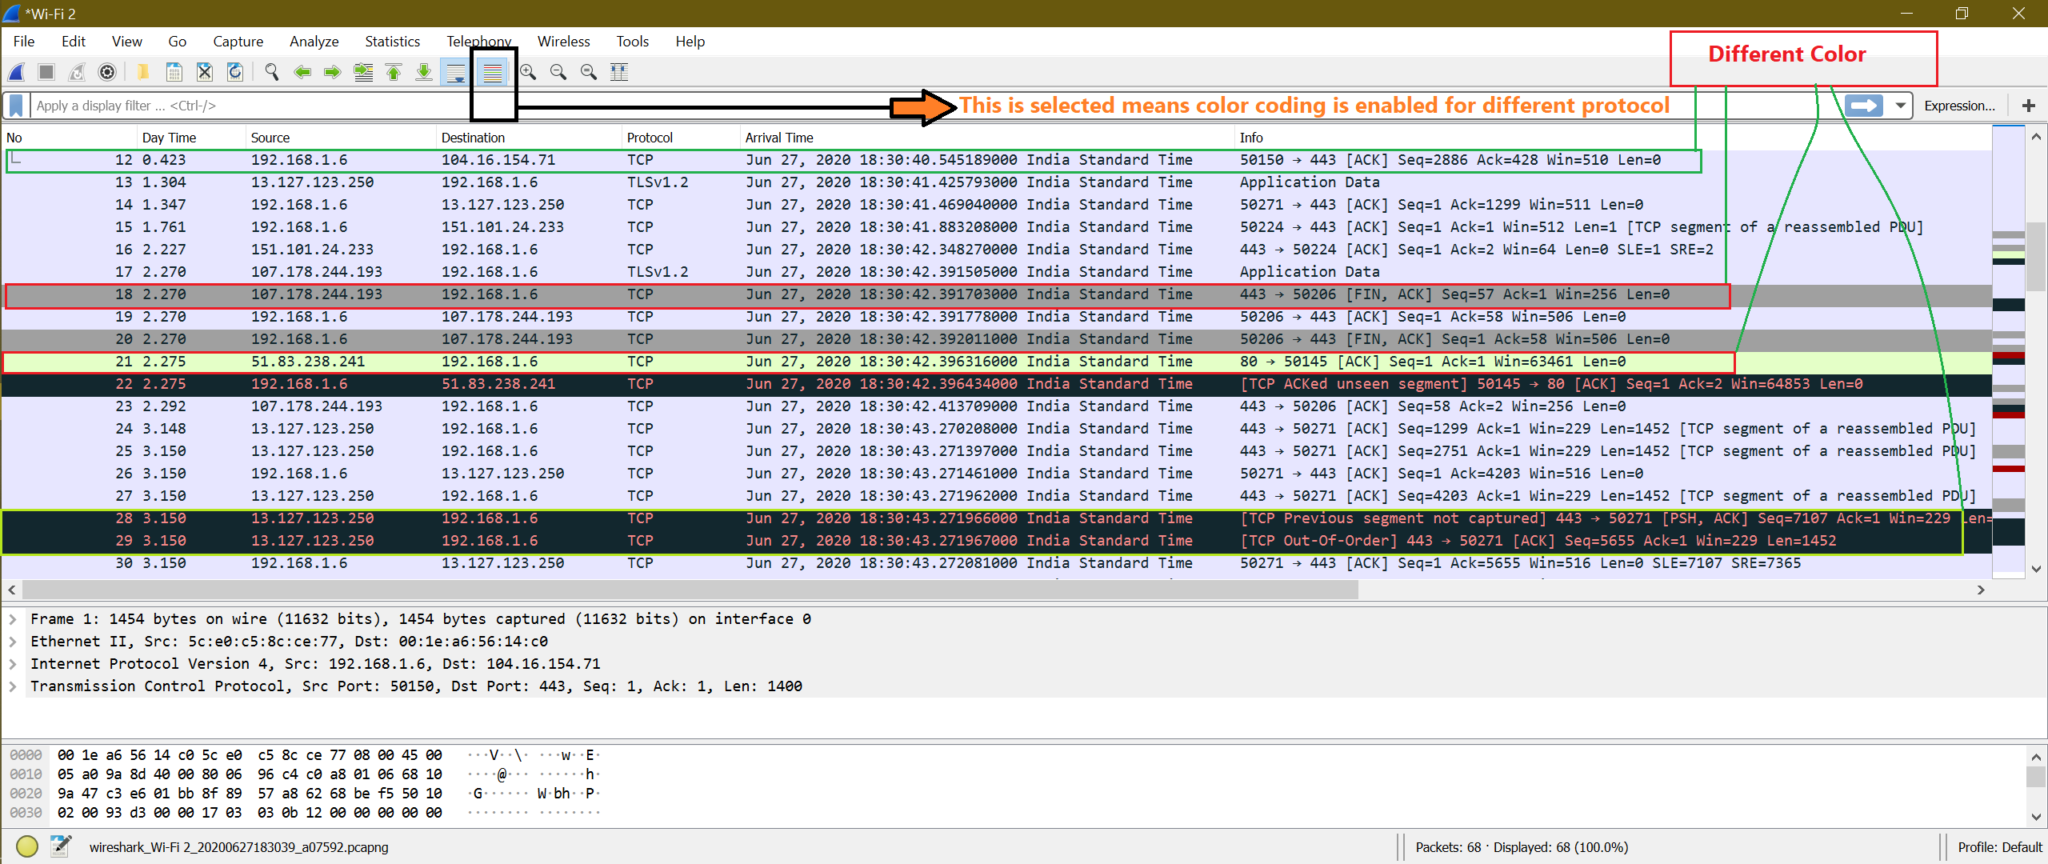 E:fiverrWorkLinuxhint_mail74838BOOK - Linux Forensics Tools & Techniquespiccoloe_enabled.png